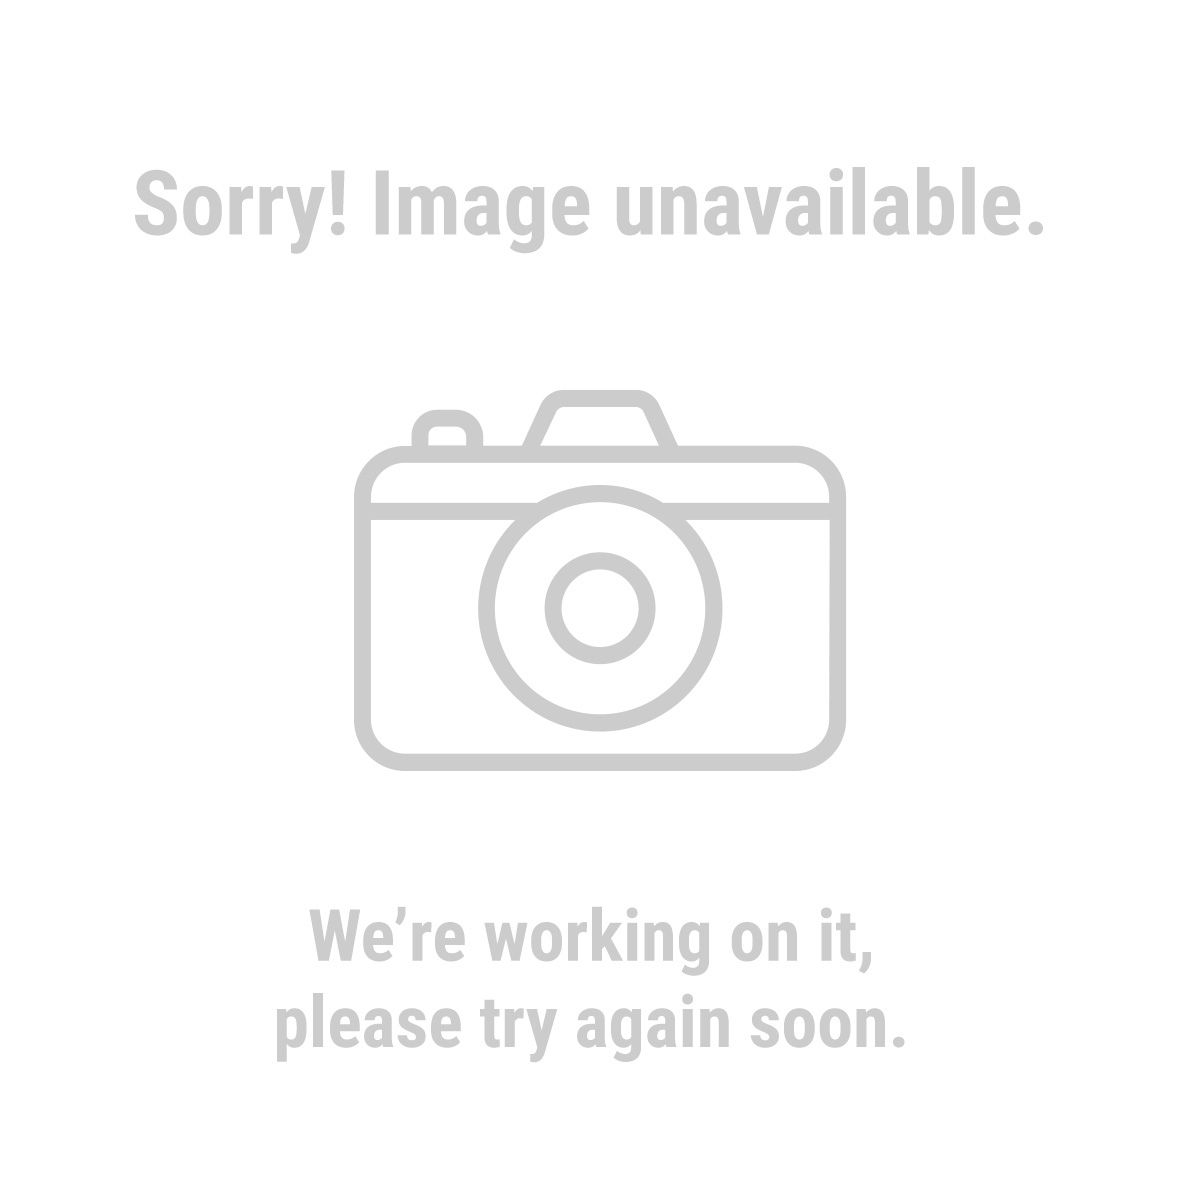 U.S. General Pro 61609 26 in., 16 Drawer Glossy Red Roller Cabinet Combo